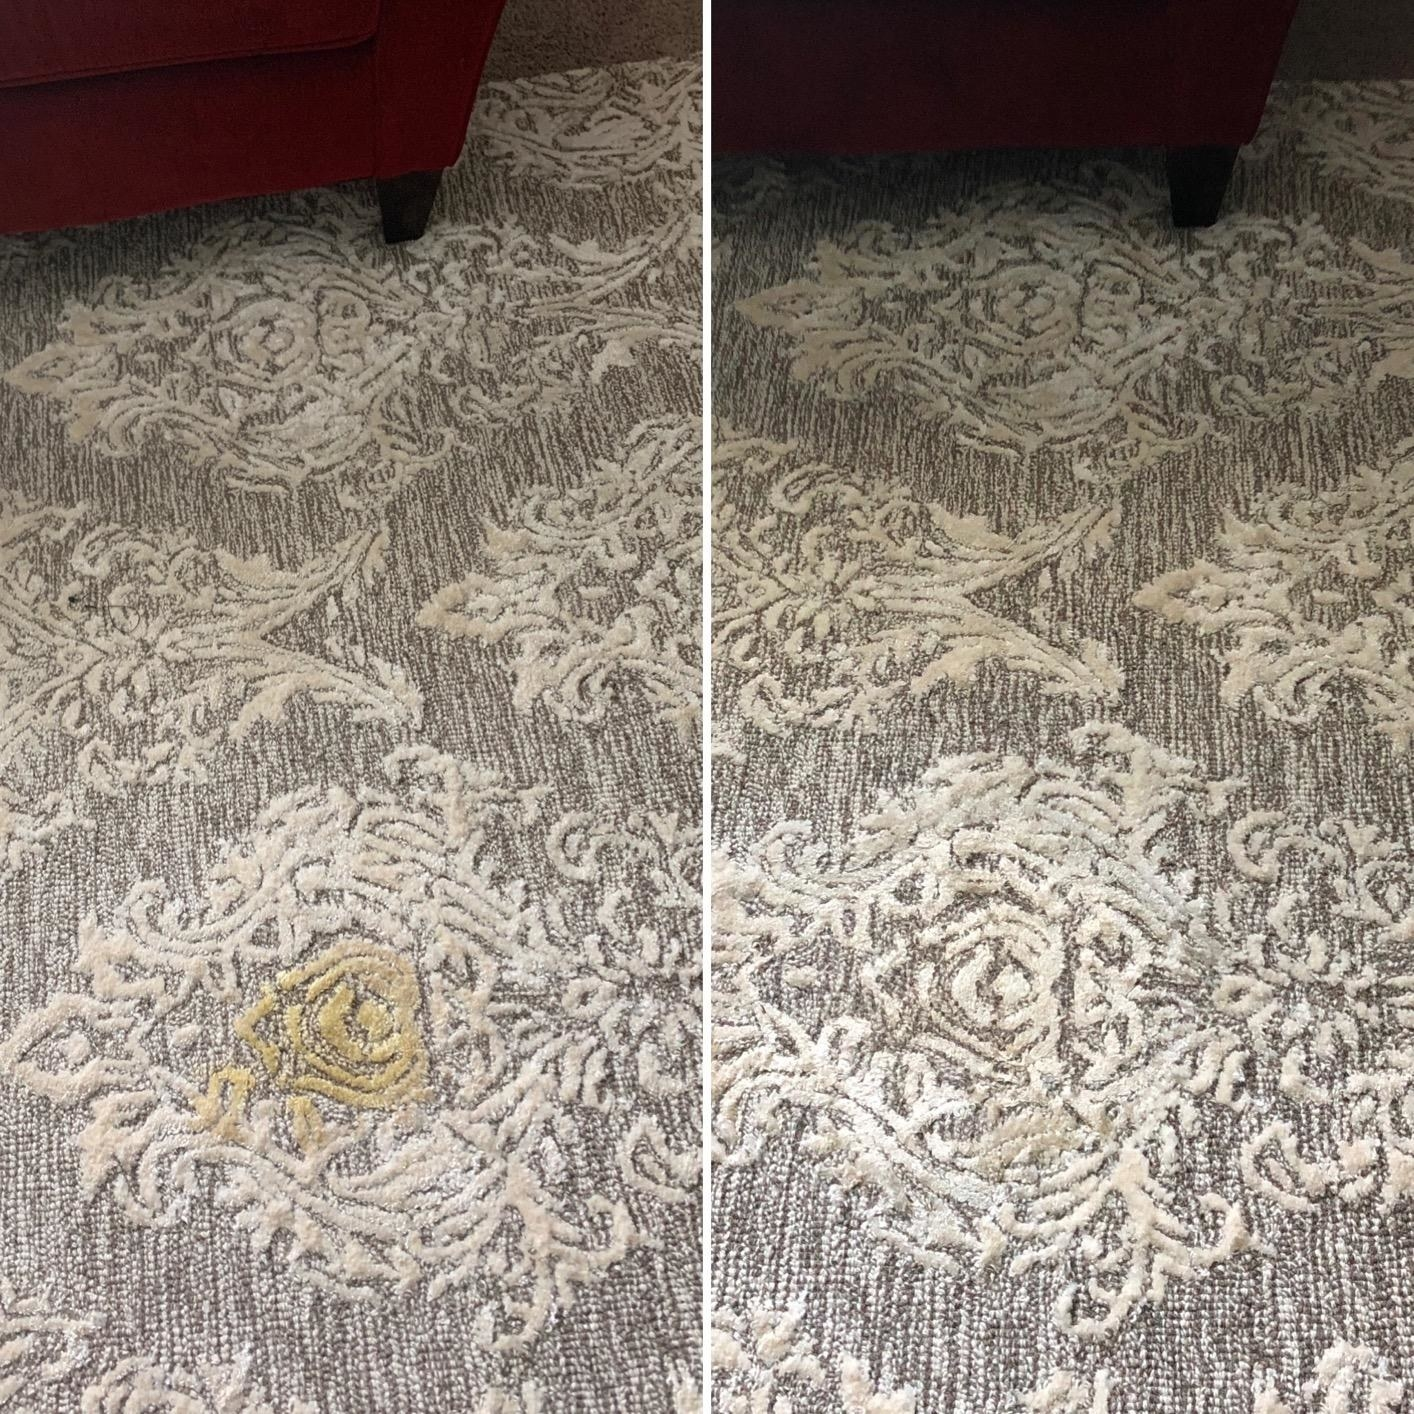 Reviewer's before and after photo showing the spray lifted a large yellow stain from a white carpet